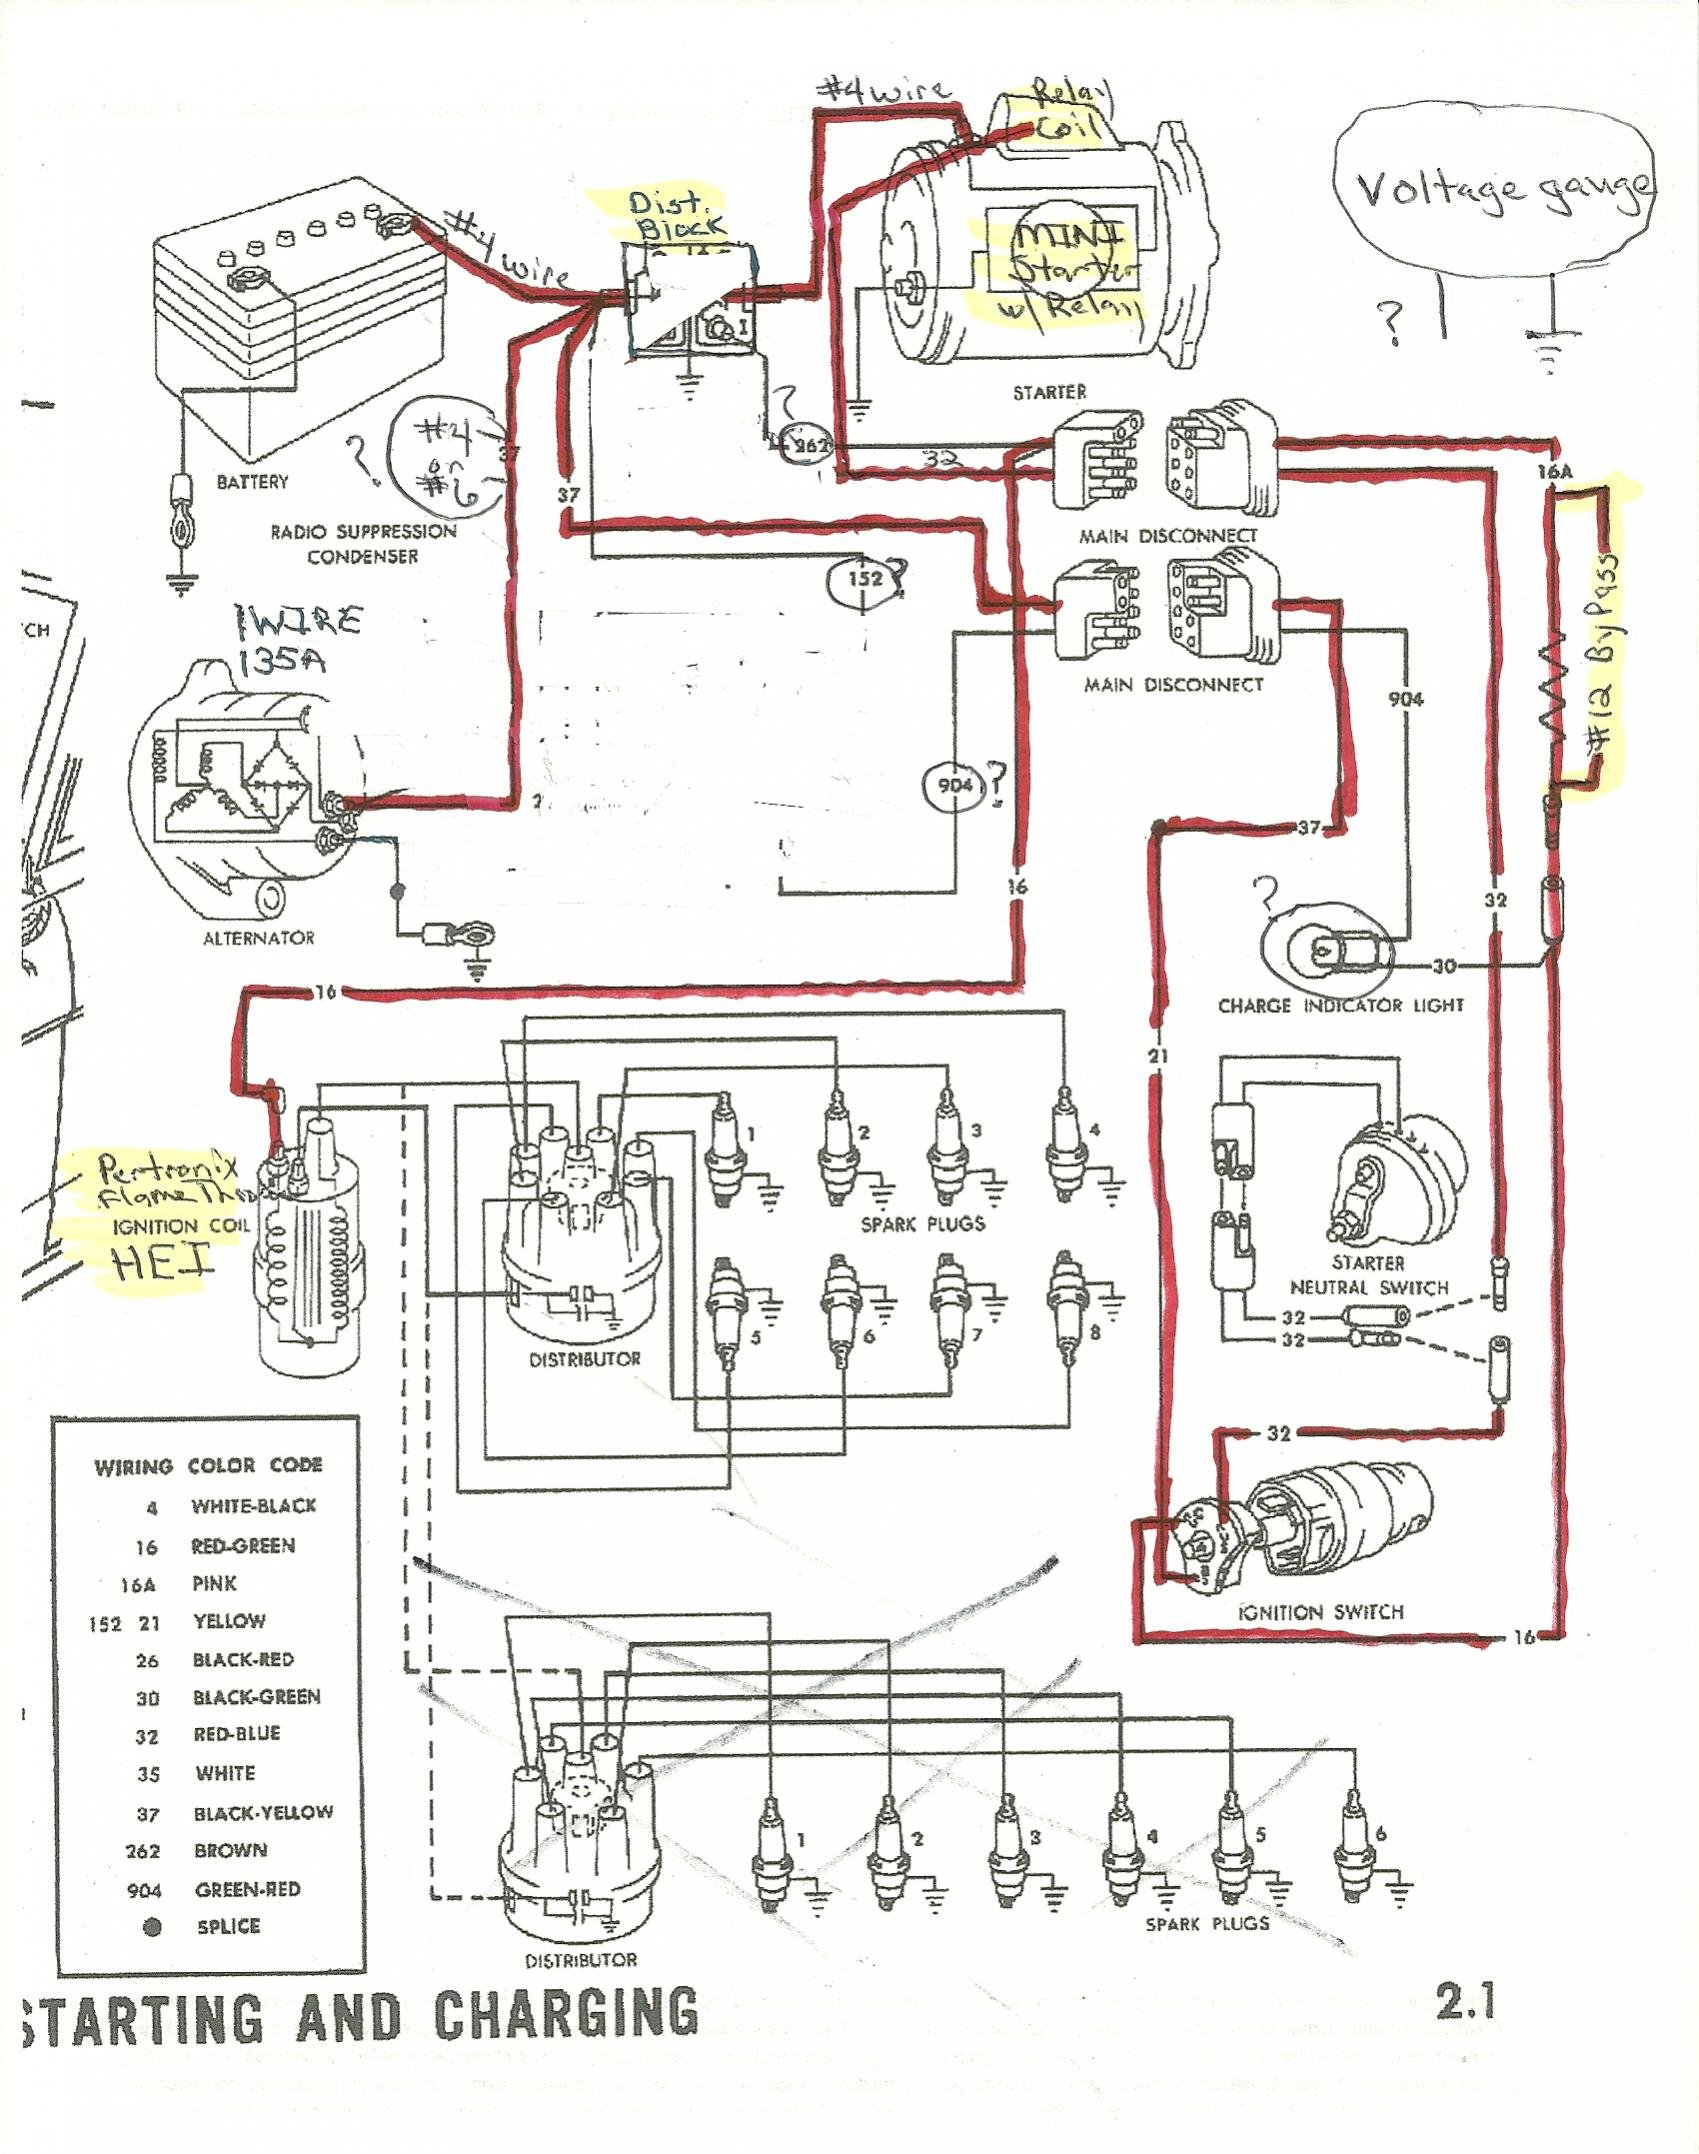 1965 alternator, starter and distributor wiring ford mustang forum ford alternator  wiring diagram click image